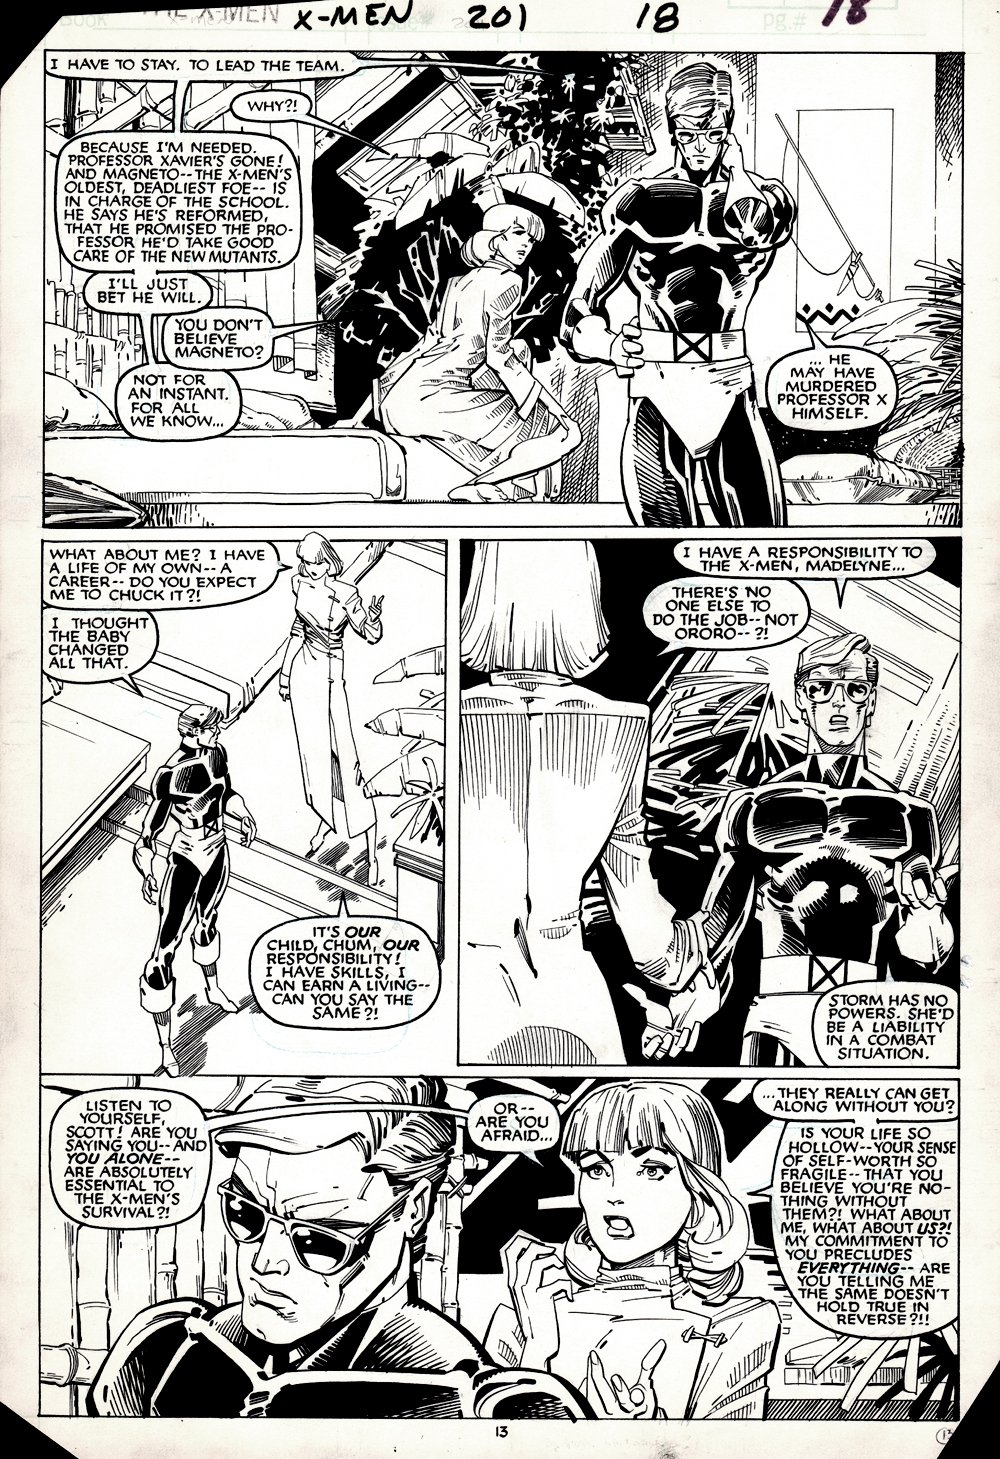 Uncanny X-Men #201 p 13 (HISTORIC BABY CABLE ISSUE!) 1985